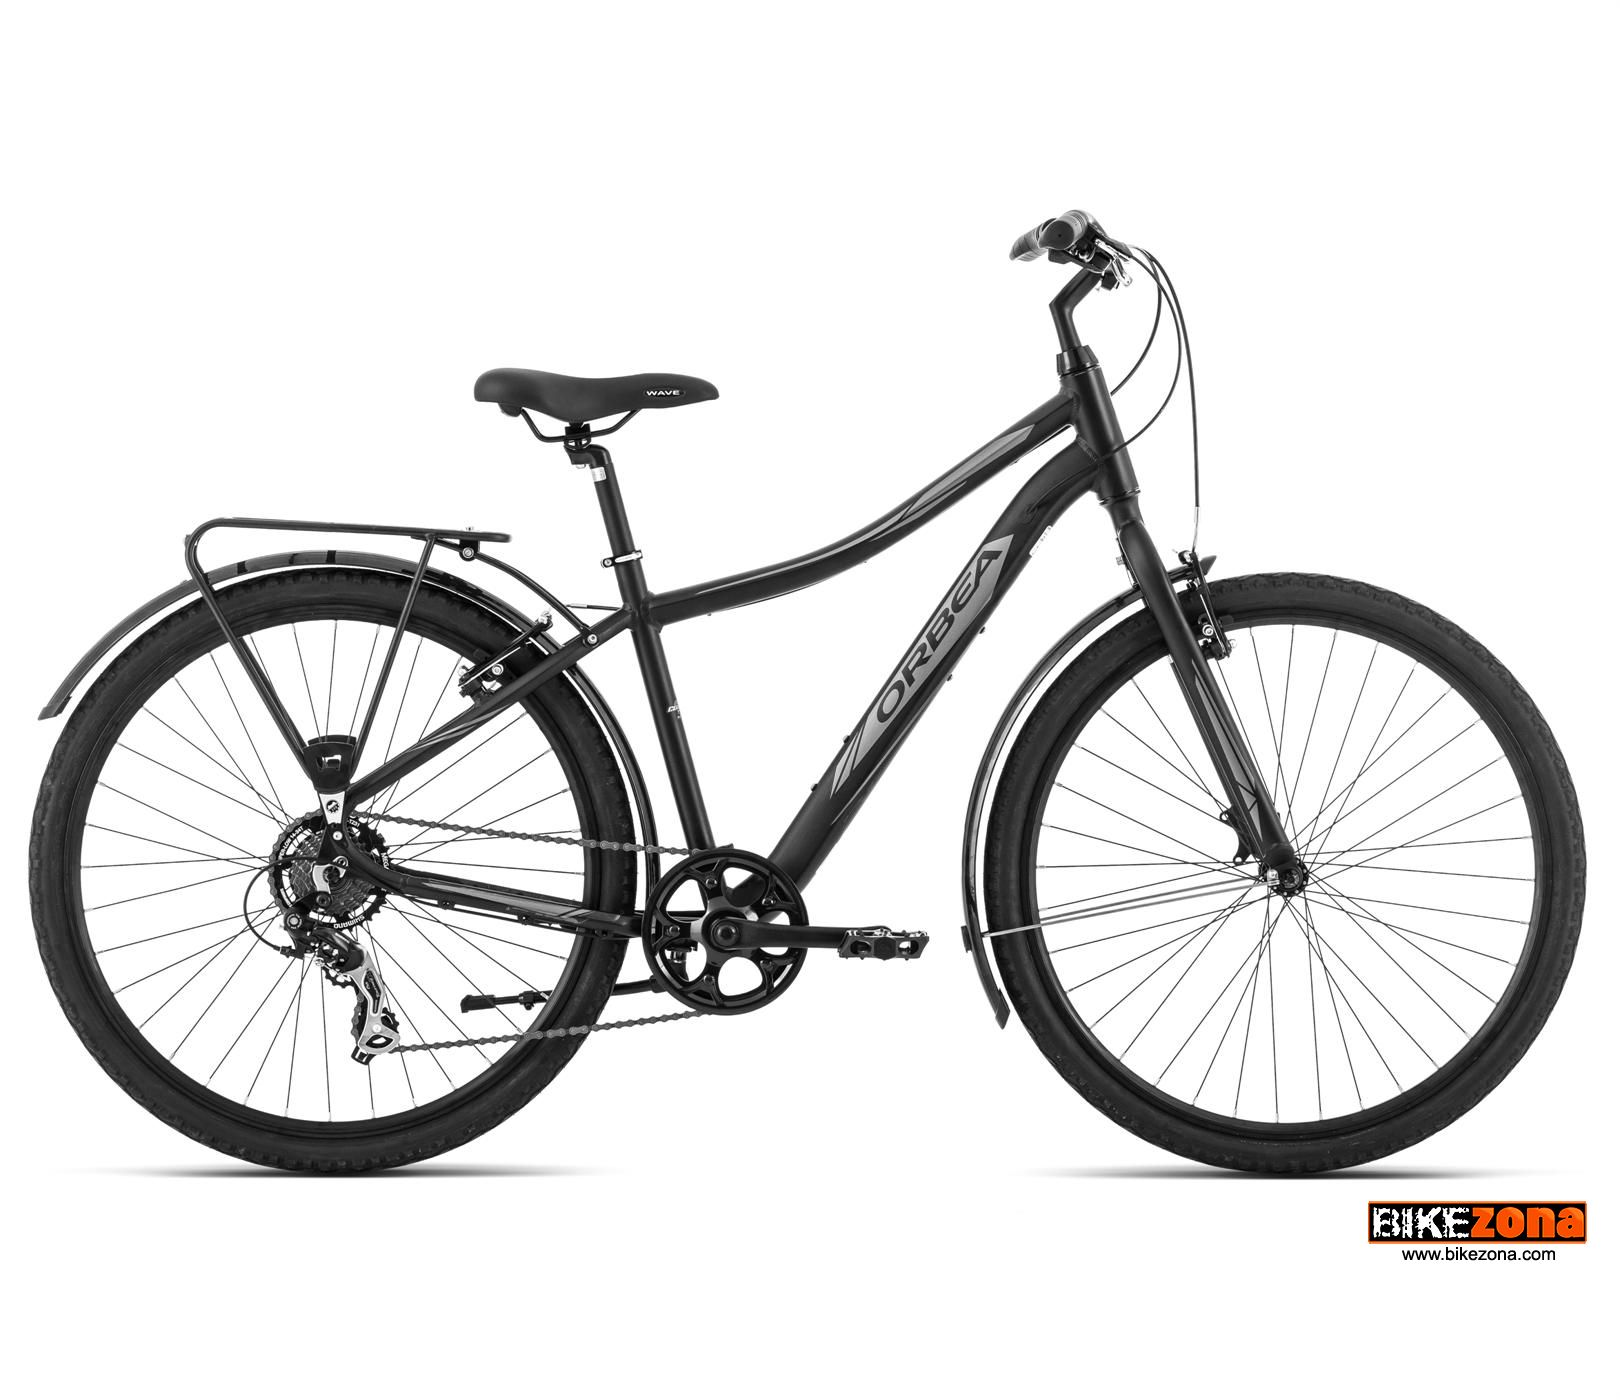 ORBEA COMFORT 30 ENTRANCE EQUIPPED (2015)